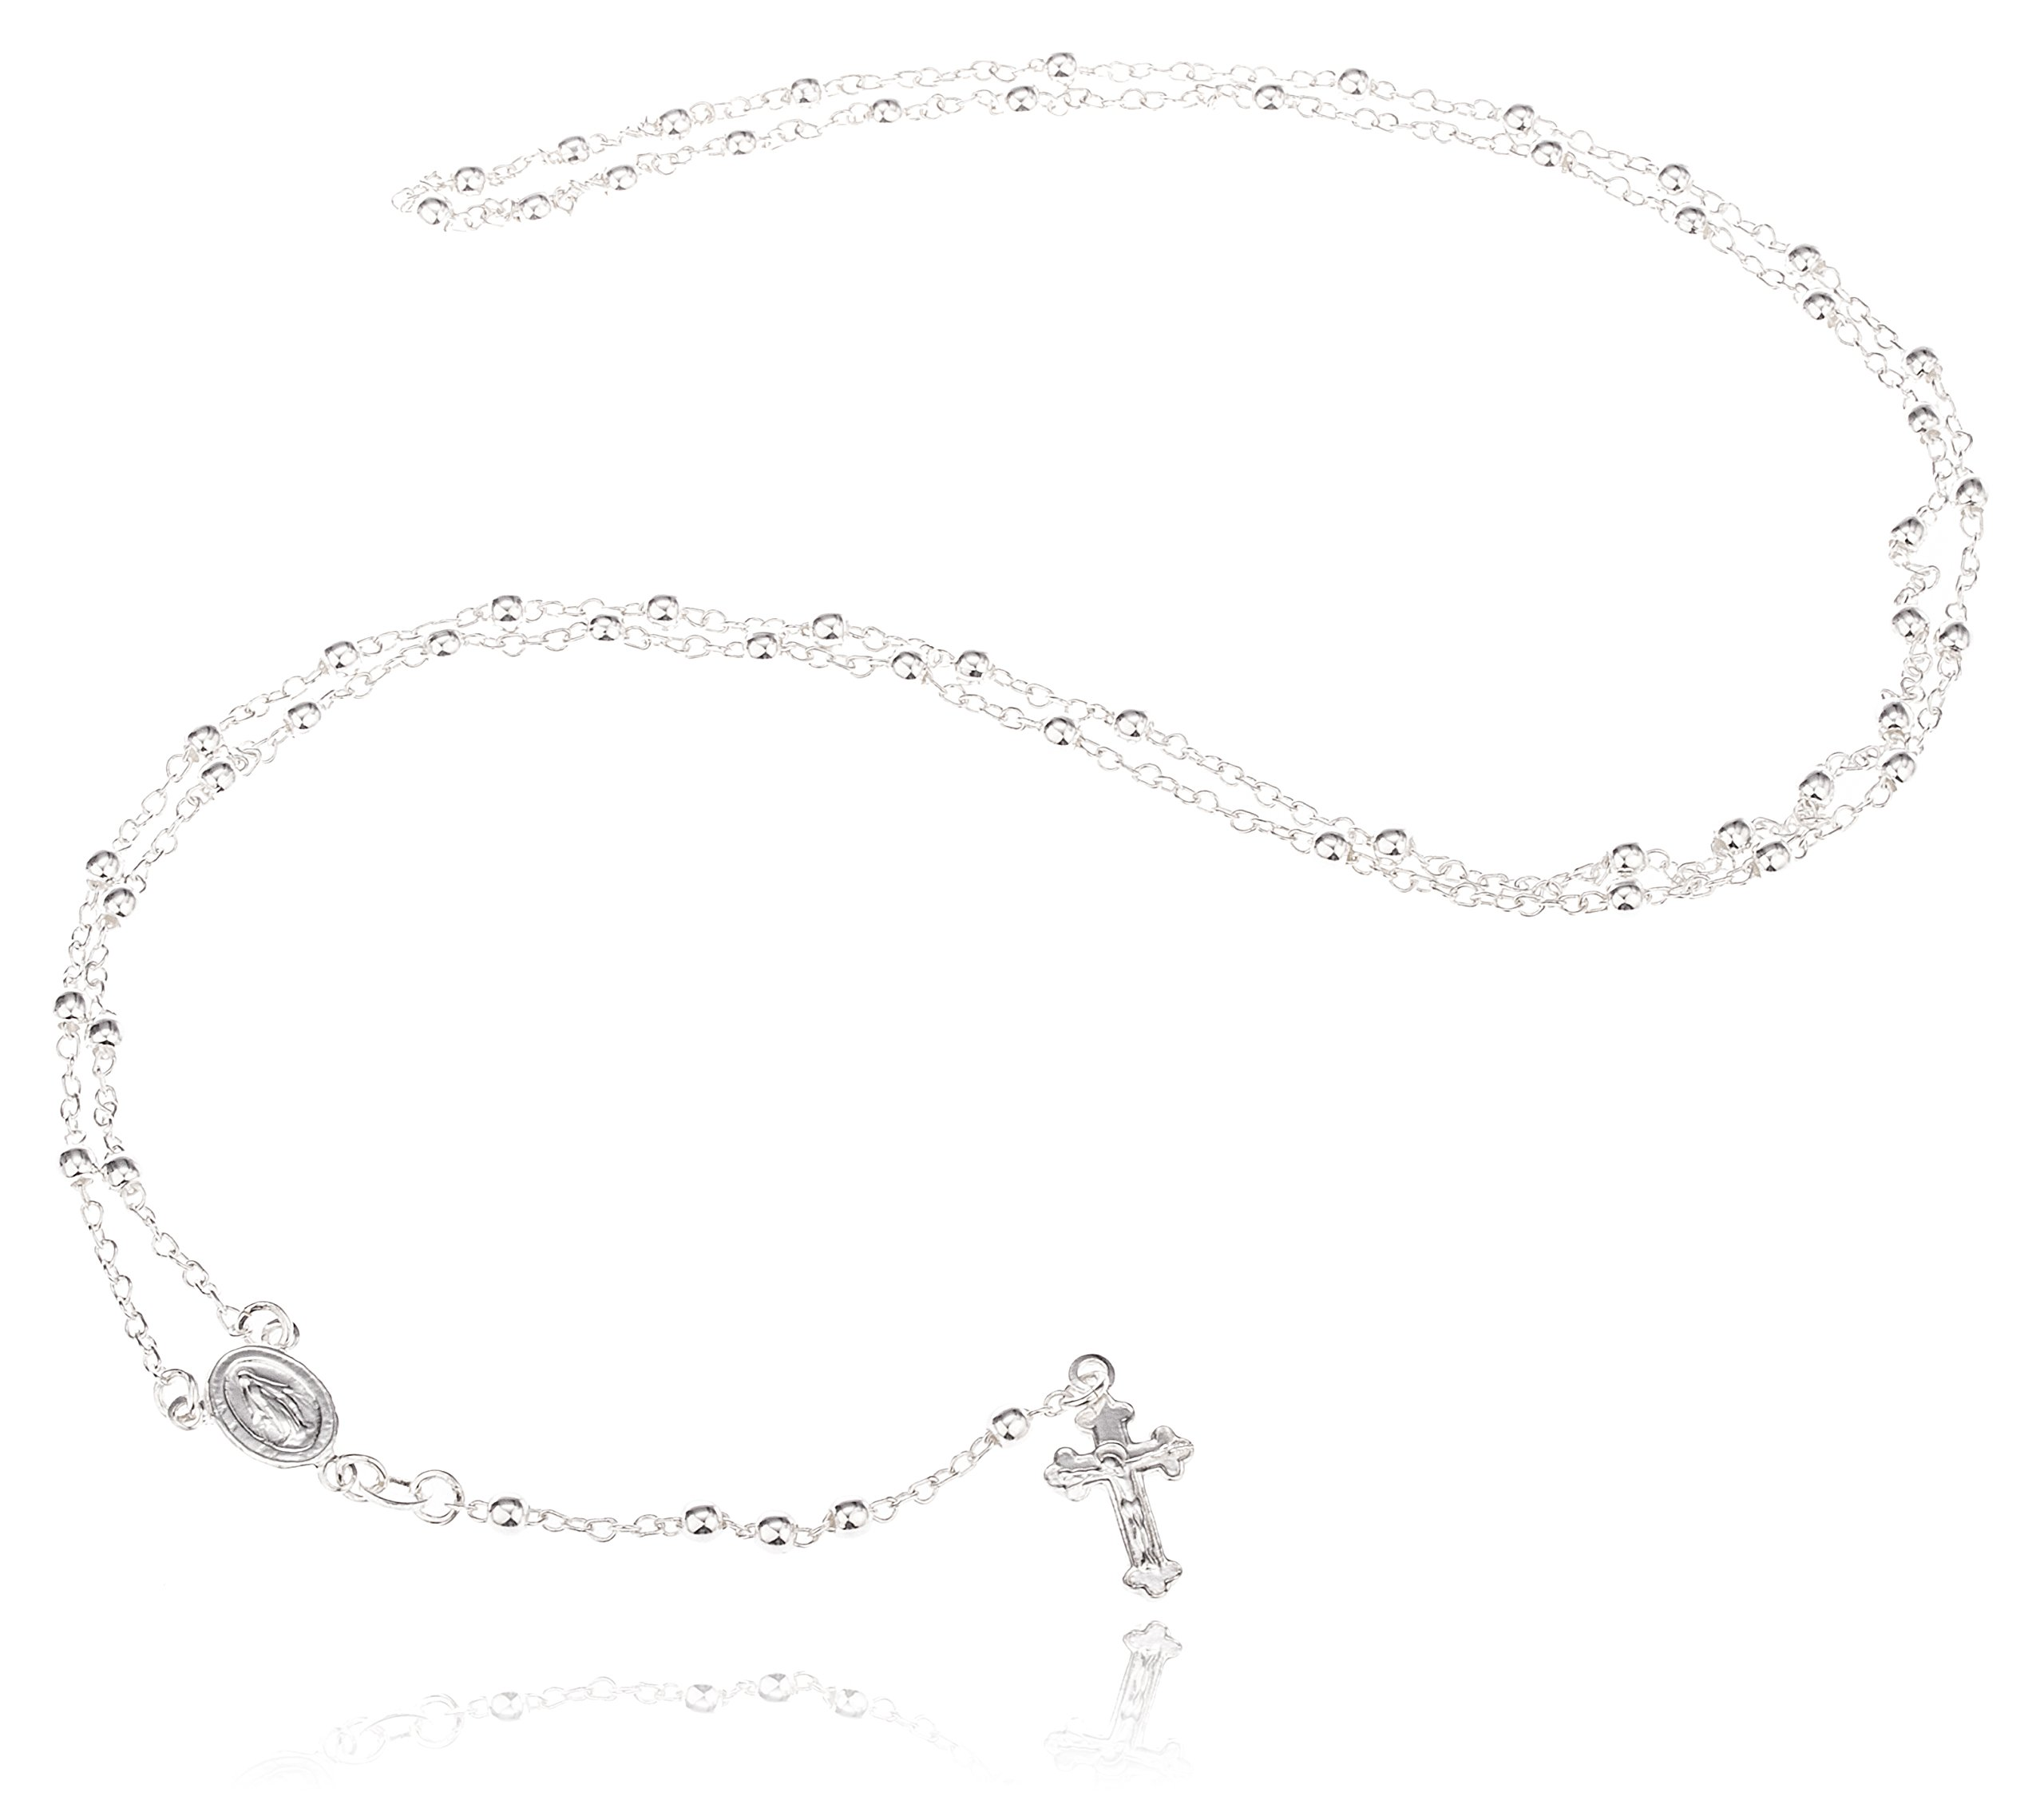 925 Sterling Silver 3mm 24 Inch Beaded Rosary Necklace with Dangling Cross (I-1520) by JOTW